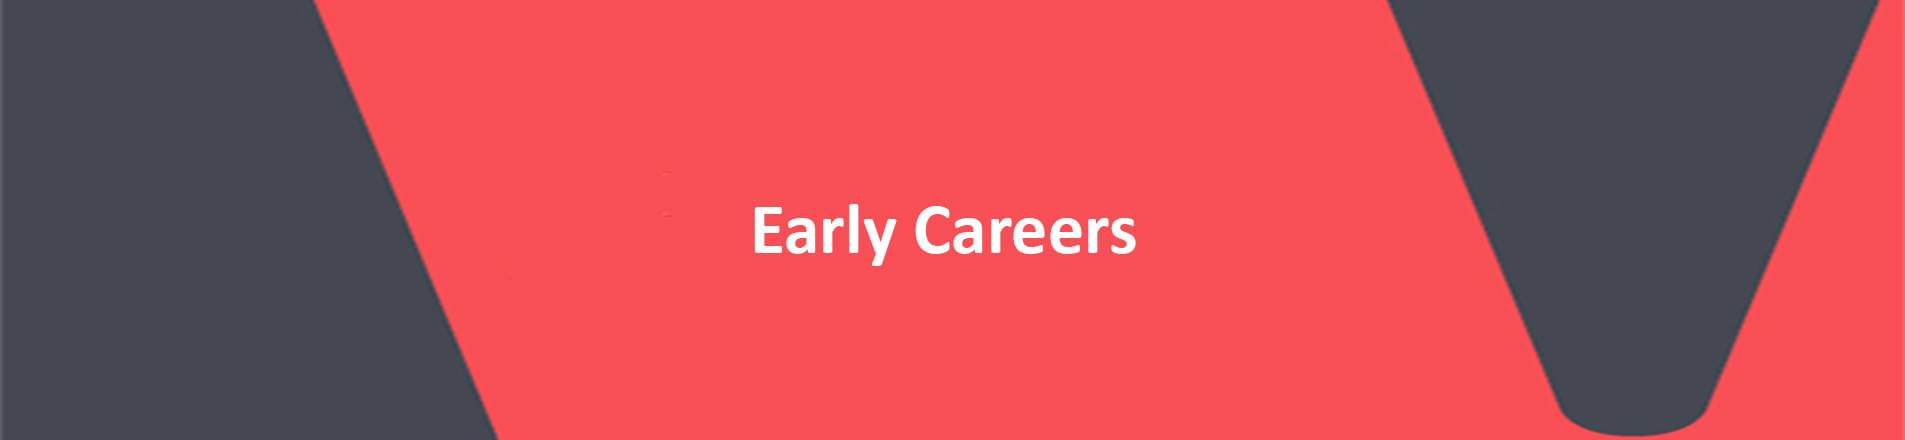 red banner with white text reading early careers